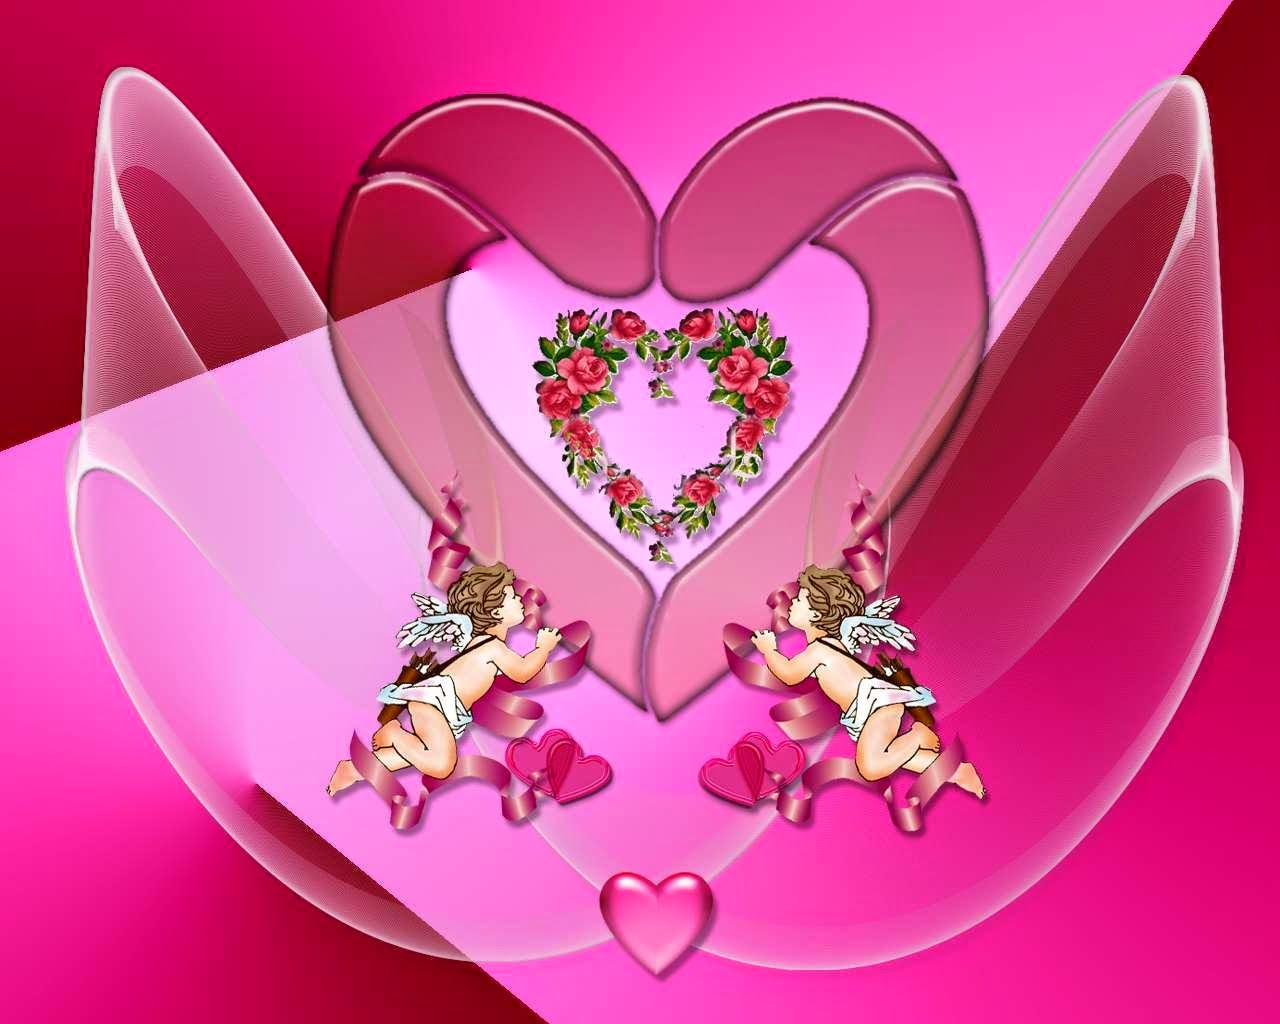 Free Download Cute Letter K In Heart Valentine S Wallpapers 1280x1024 For Your Desktop Mobile Tablet Explore 50 Cute Letter K Wallpaper Cute Letter K Wallpaper Letter K Wallpapers K Wallpapers